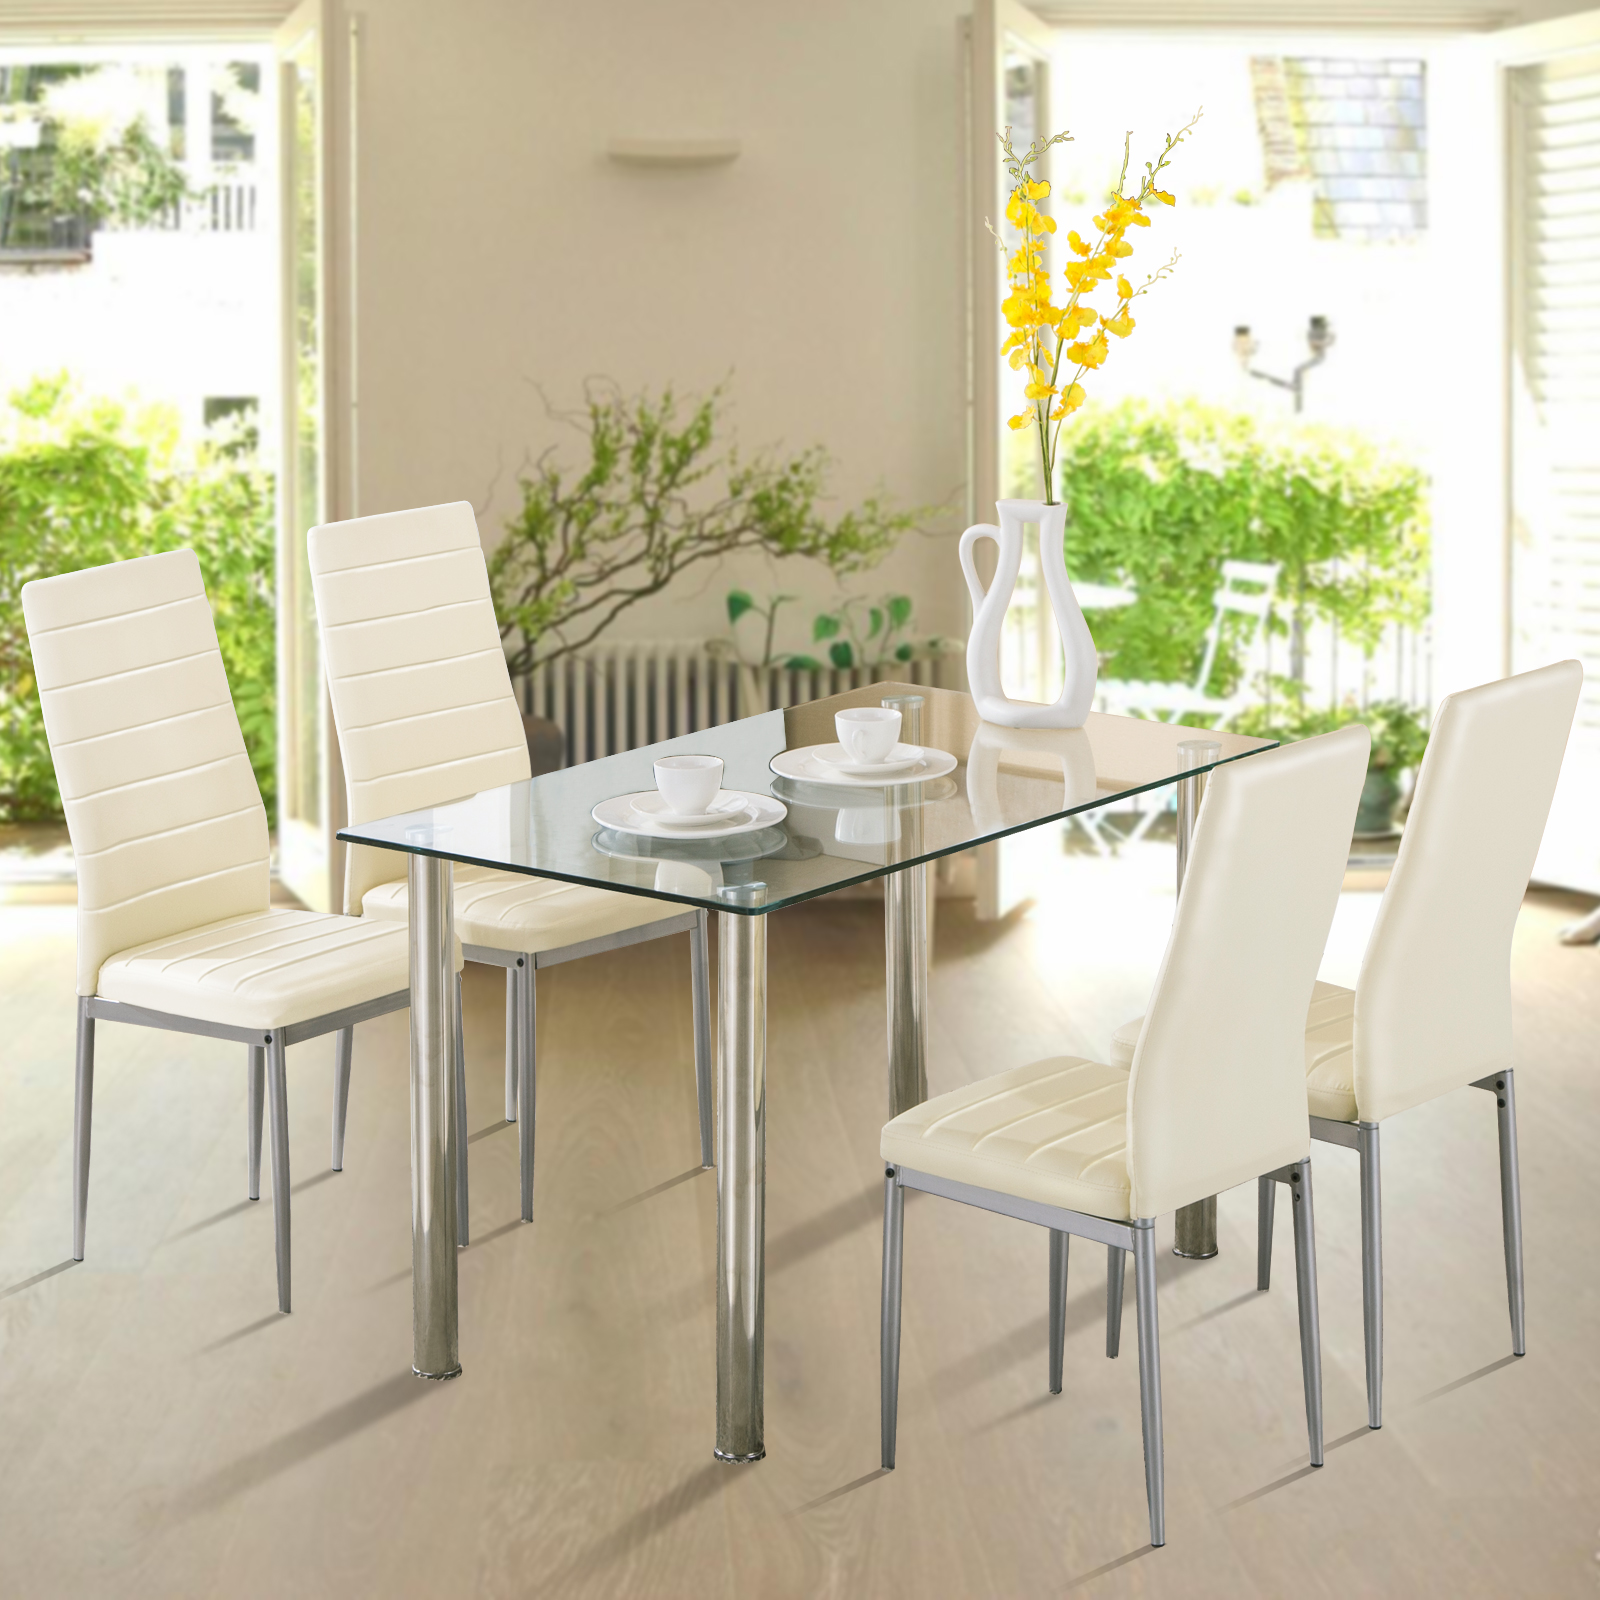 4 Chairs In Dining Room: 5 Piece Dining Table Set 4 Chairs Glass Metal Kitchen Room